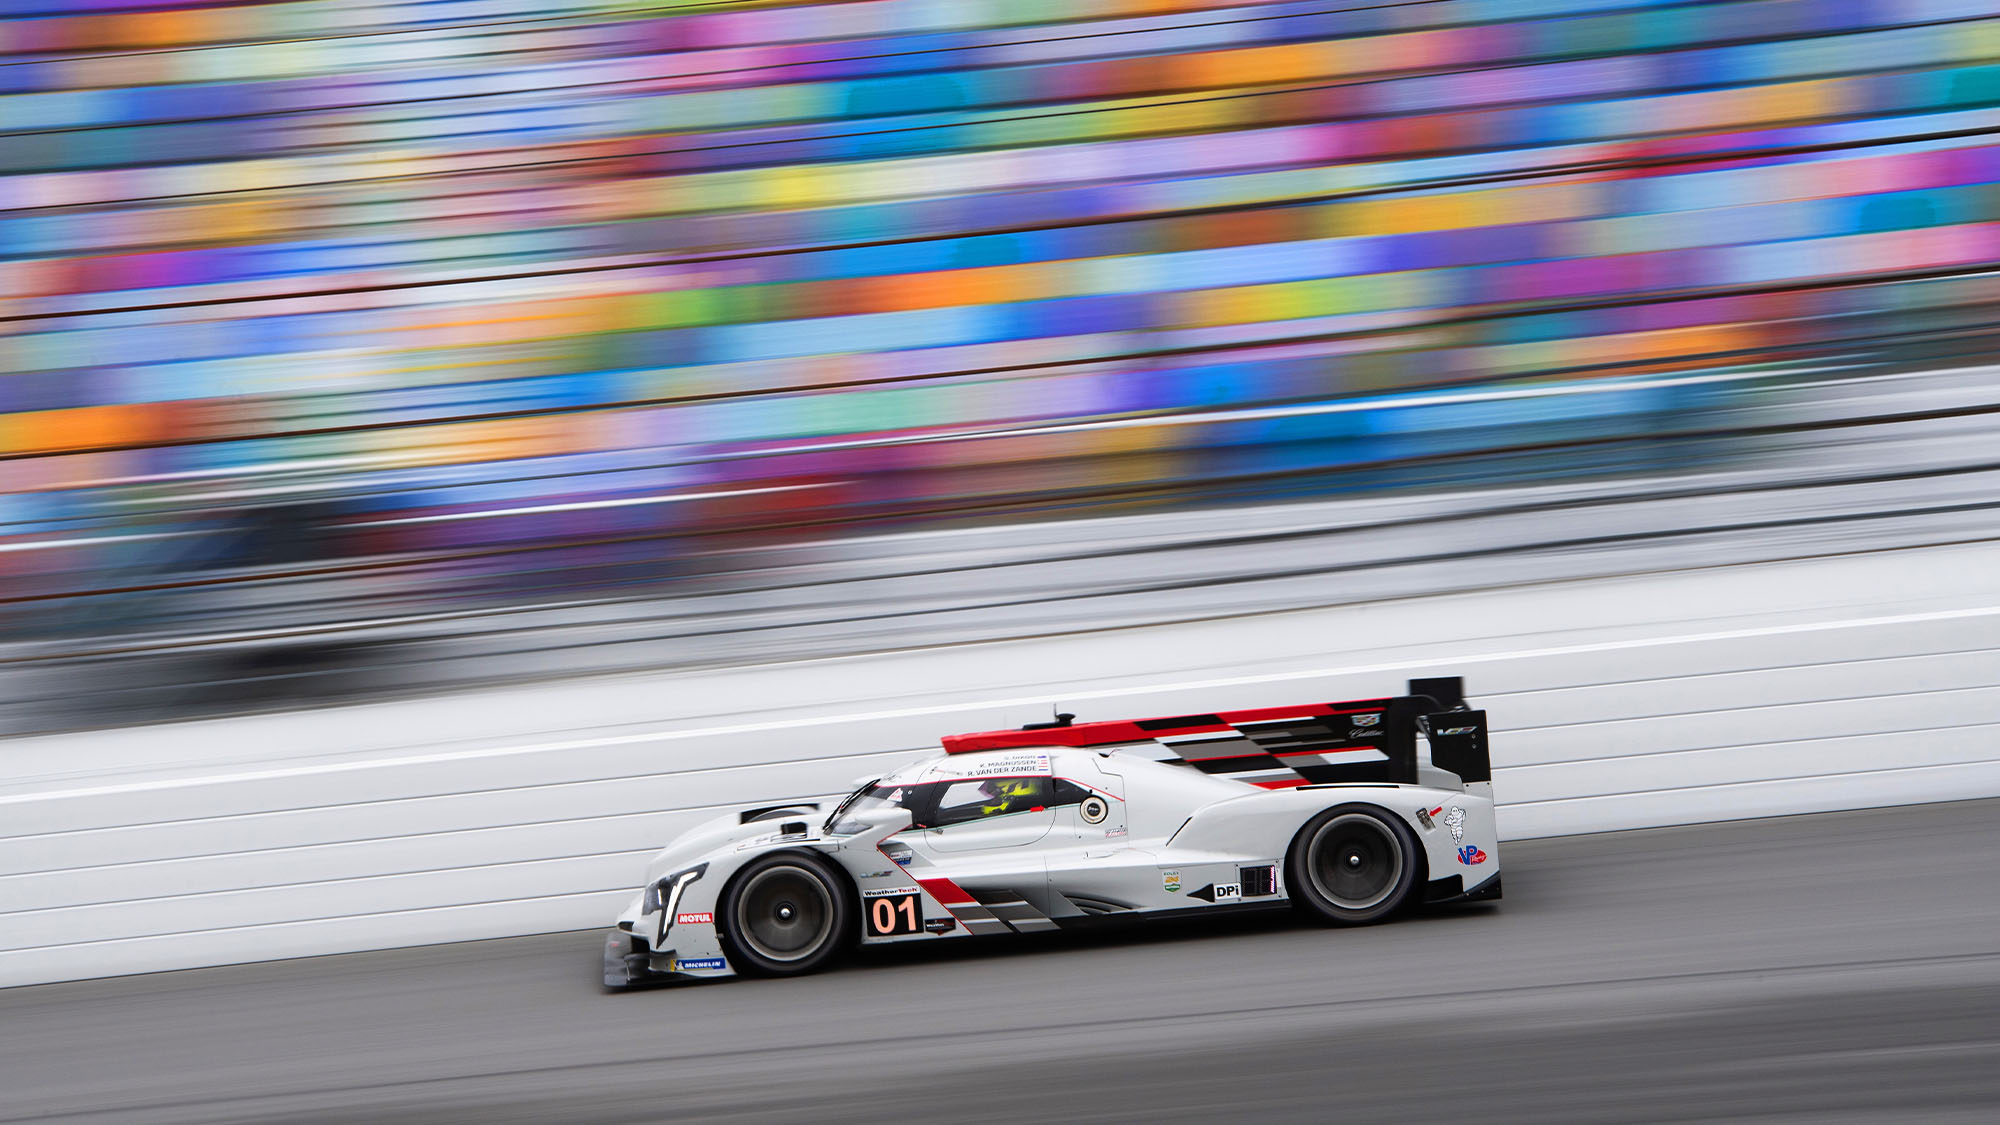 Kevin Magnussen/Renger van der Zande during practice for the 2021 Daytona 24 Hour race. Photo: Jamey Price/Grand Prix Photo